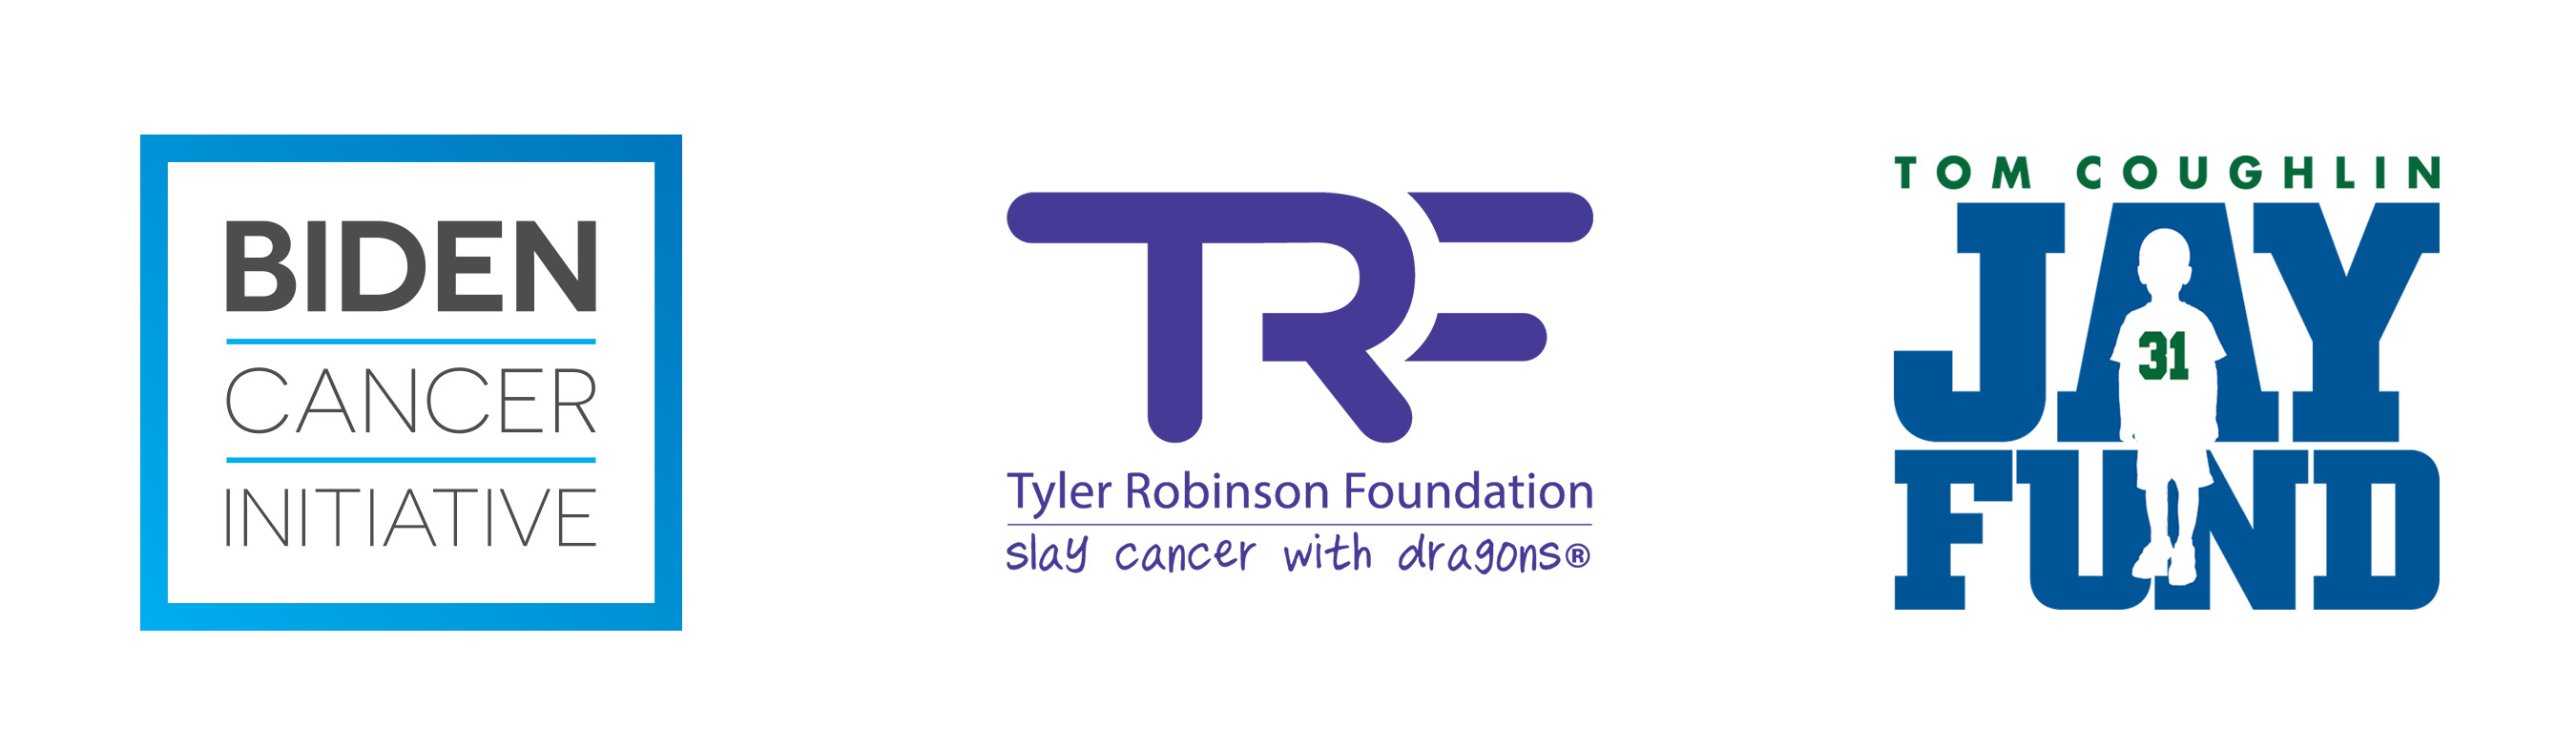 Banner of Biden Cancer Initiative logo, The Tom Coughlin Jay Fund Foundation logo, and The Tyler Robinson Foundation logo